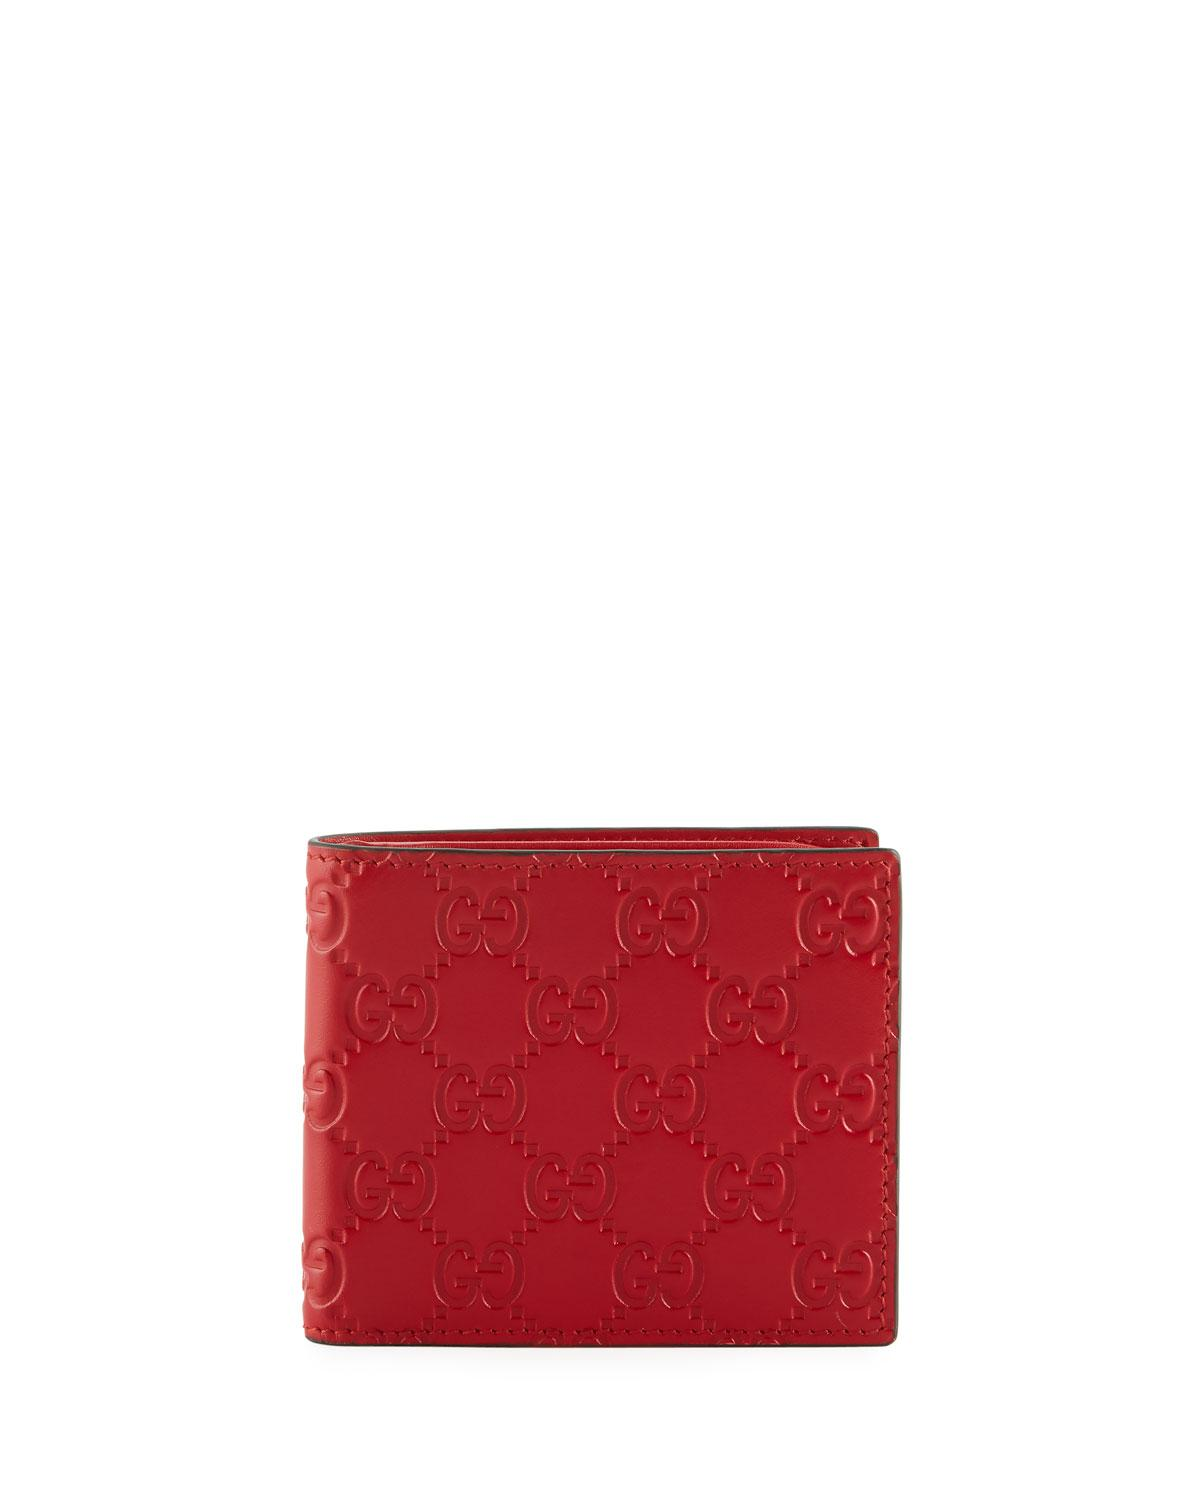 b7896b715a19a9 Gucci Signature Logo Leather Wallet in Red for Men - Lyst